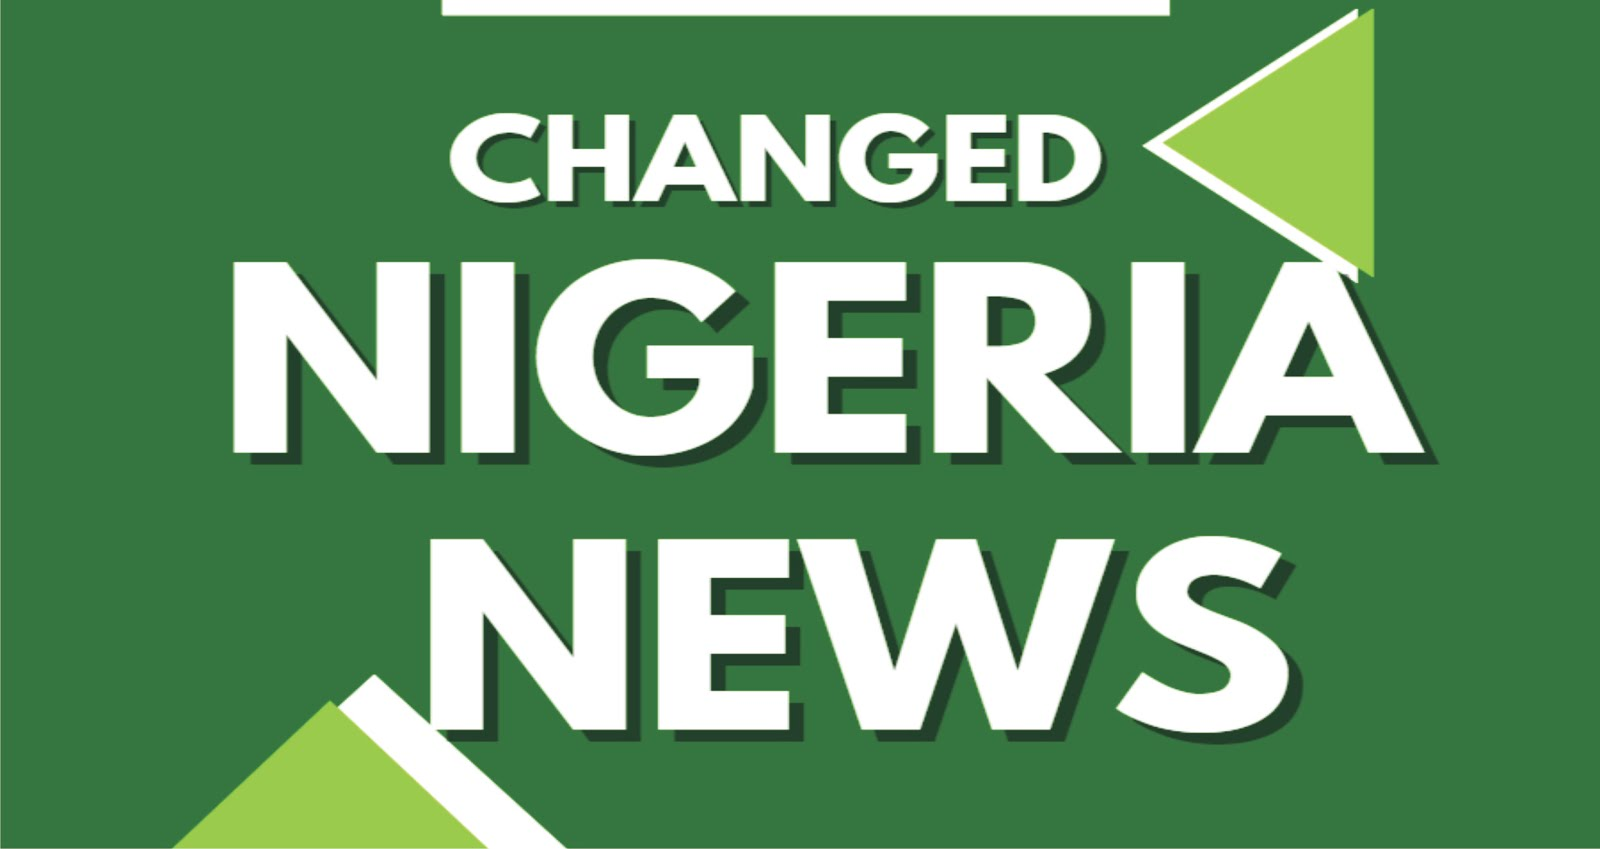 CHANGED NIGERIA NEWS